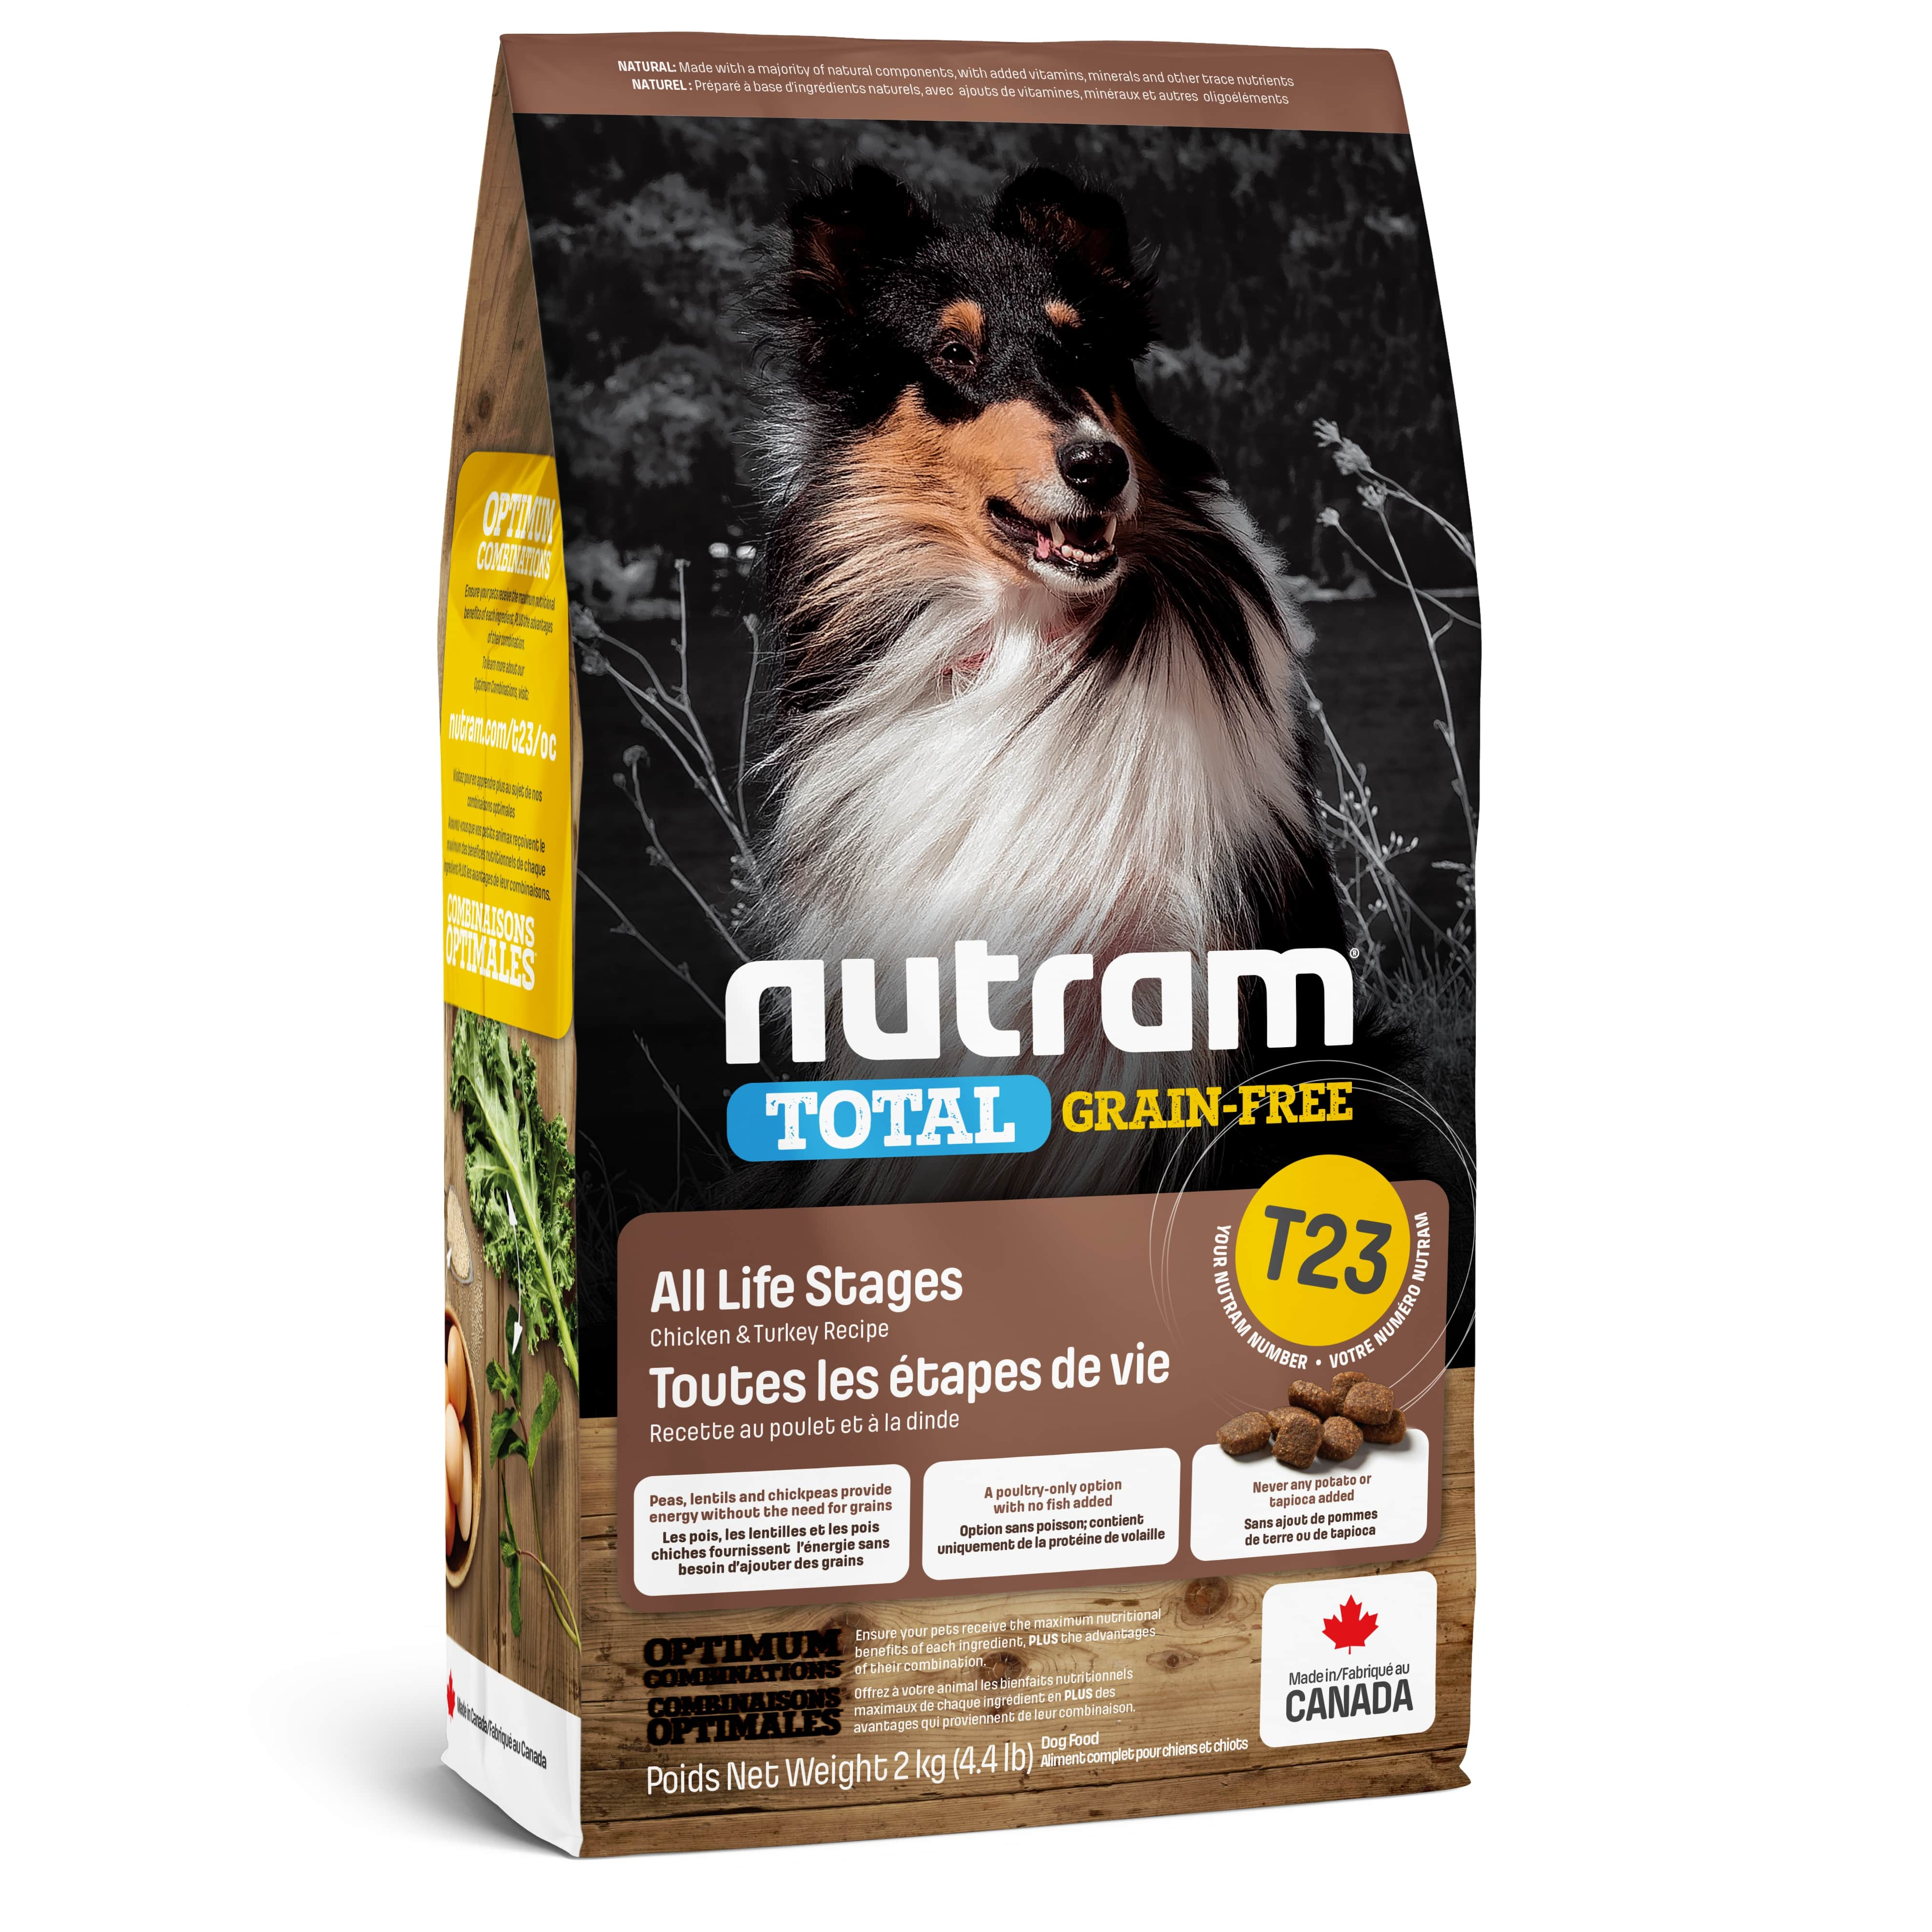 T23 Nutram Total Grain-Free® Turkey, Chiken & Duck Dog Food